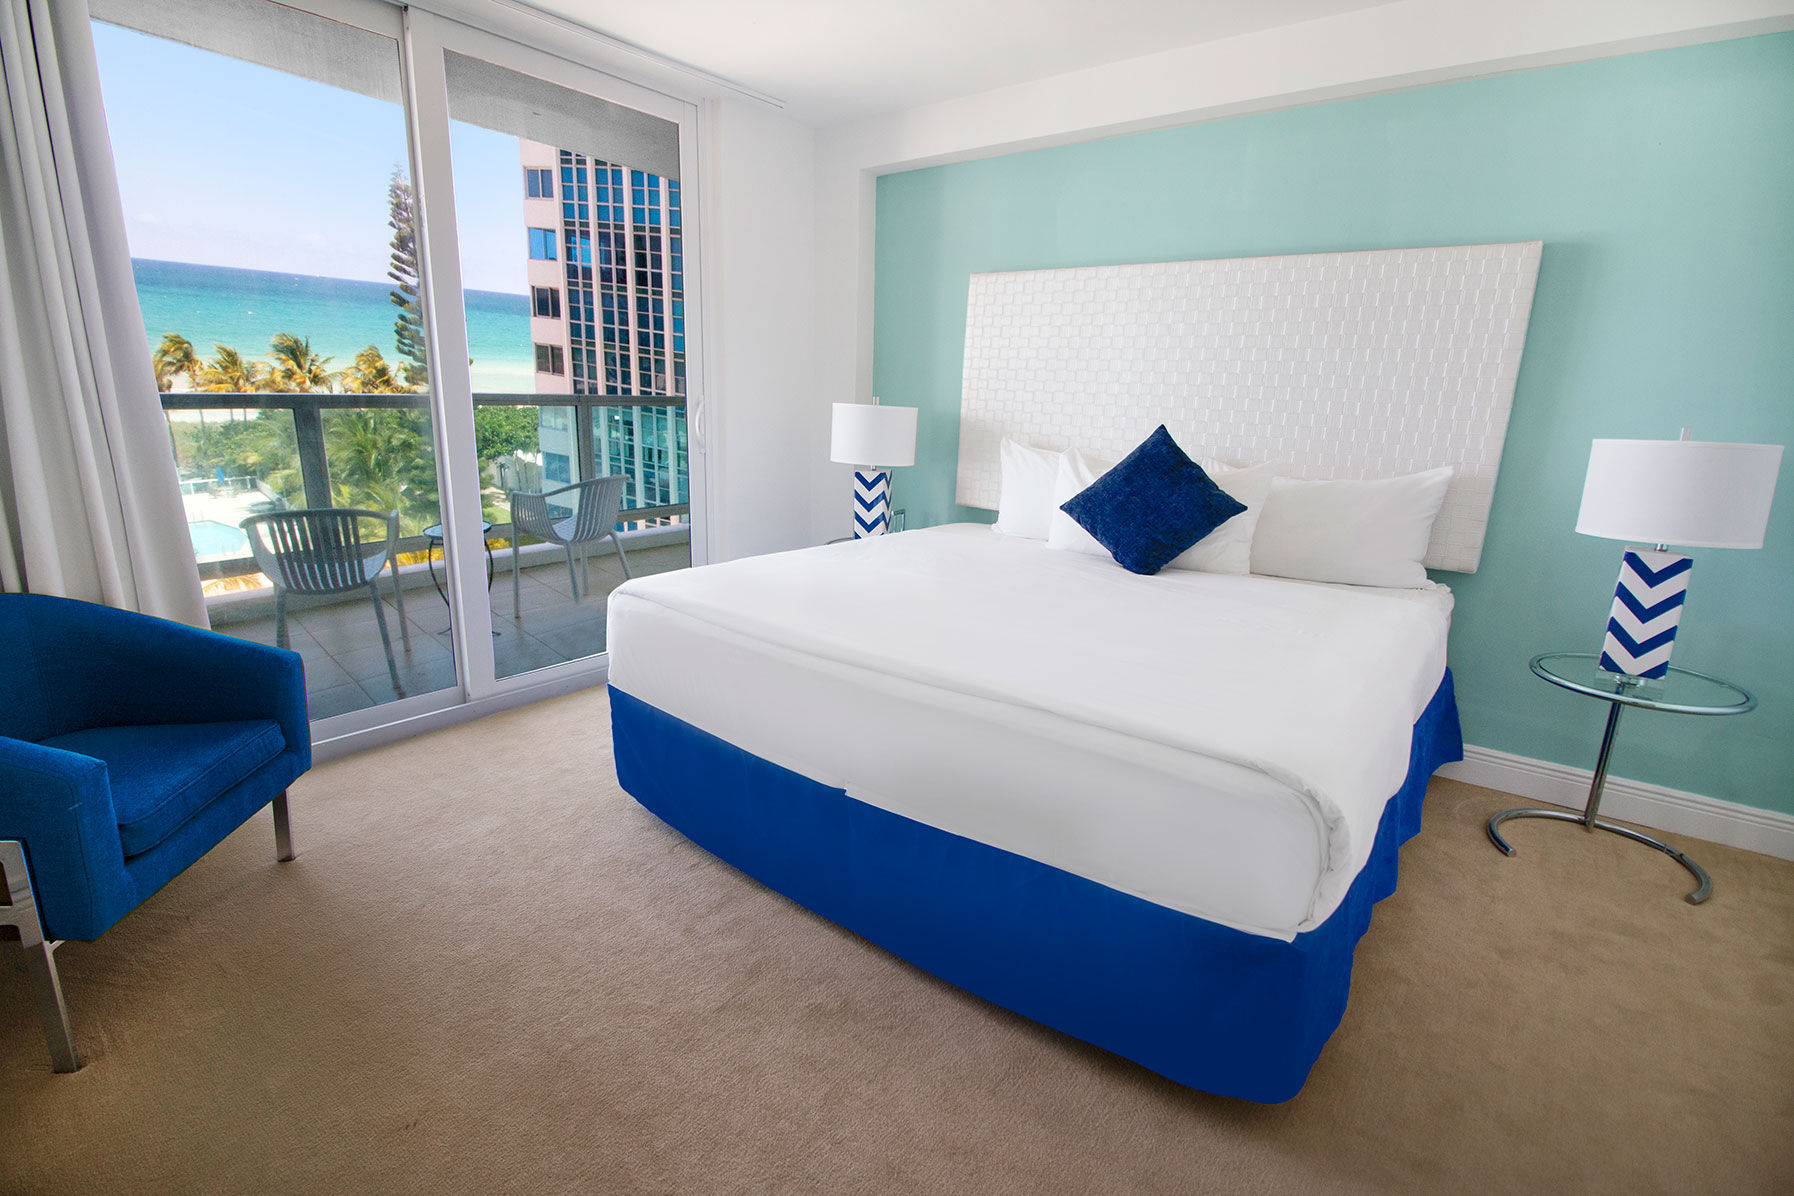 Ocean View Bedroom of a Deluxe 2 bedroom apartment at Seacoast Suites